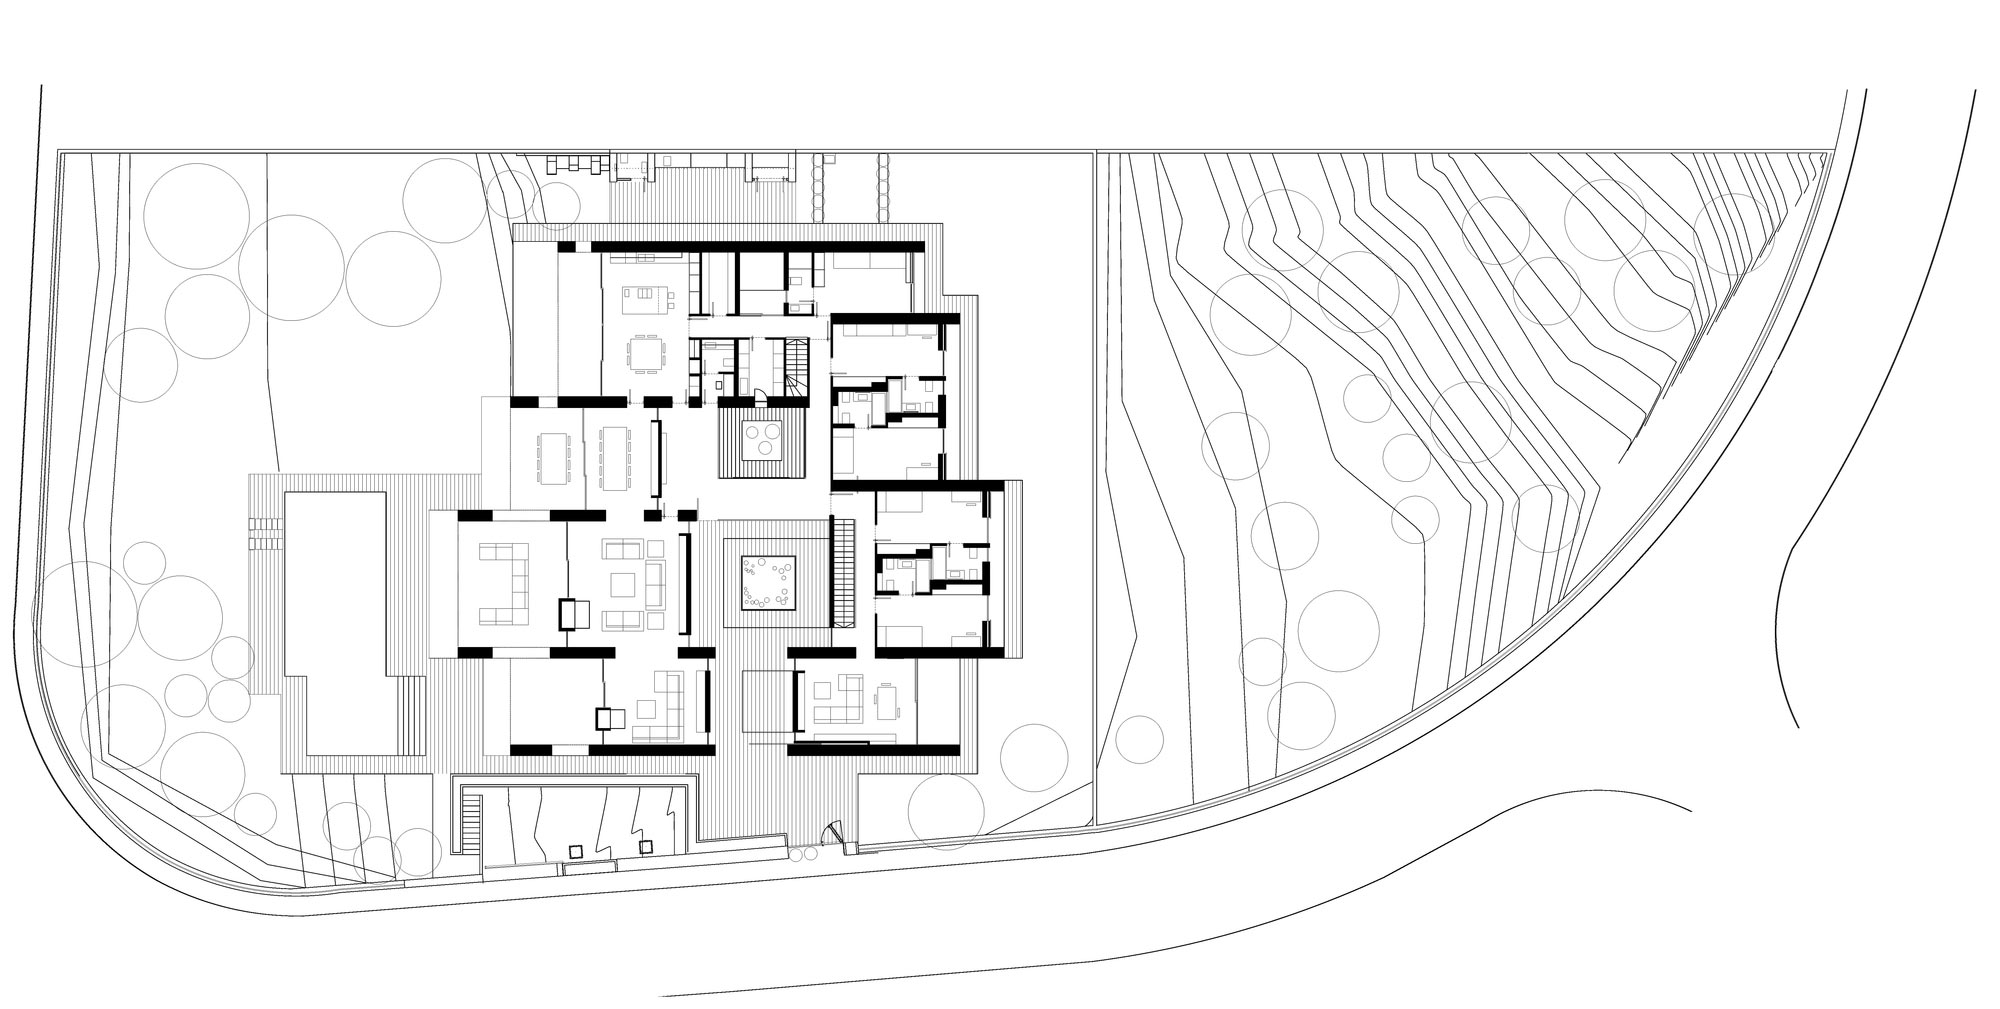 Ground Floor Plan, Contemporary Home in Monasterios, Spain